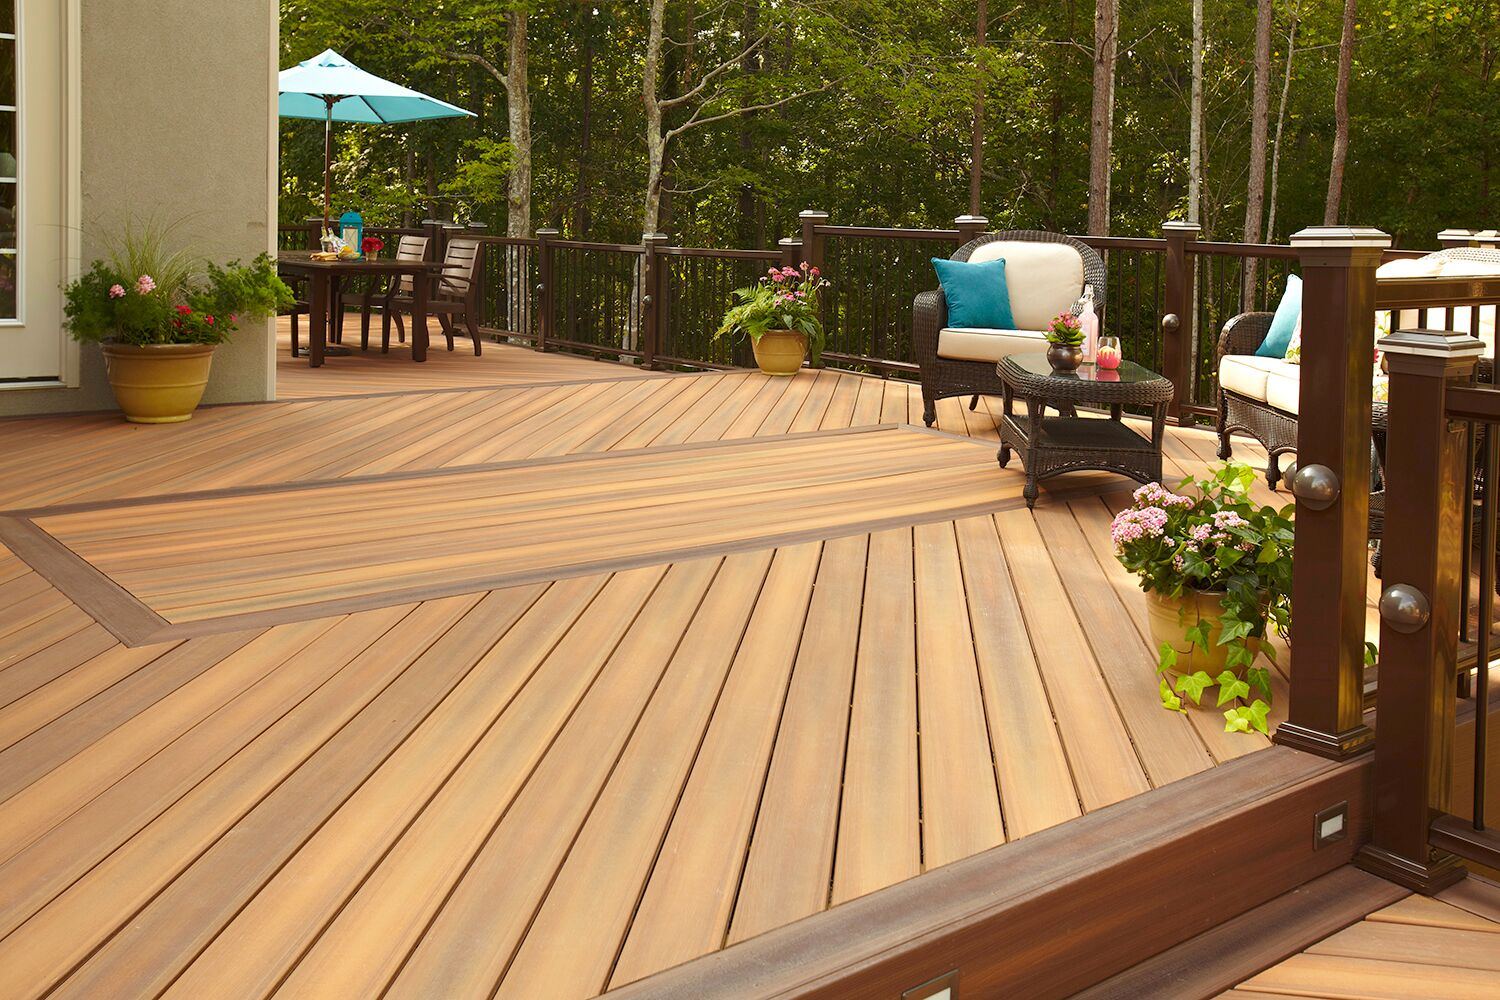 Trex Decking Home Depot | Veranda Composite Decking | Composite Decking at Home Depot